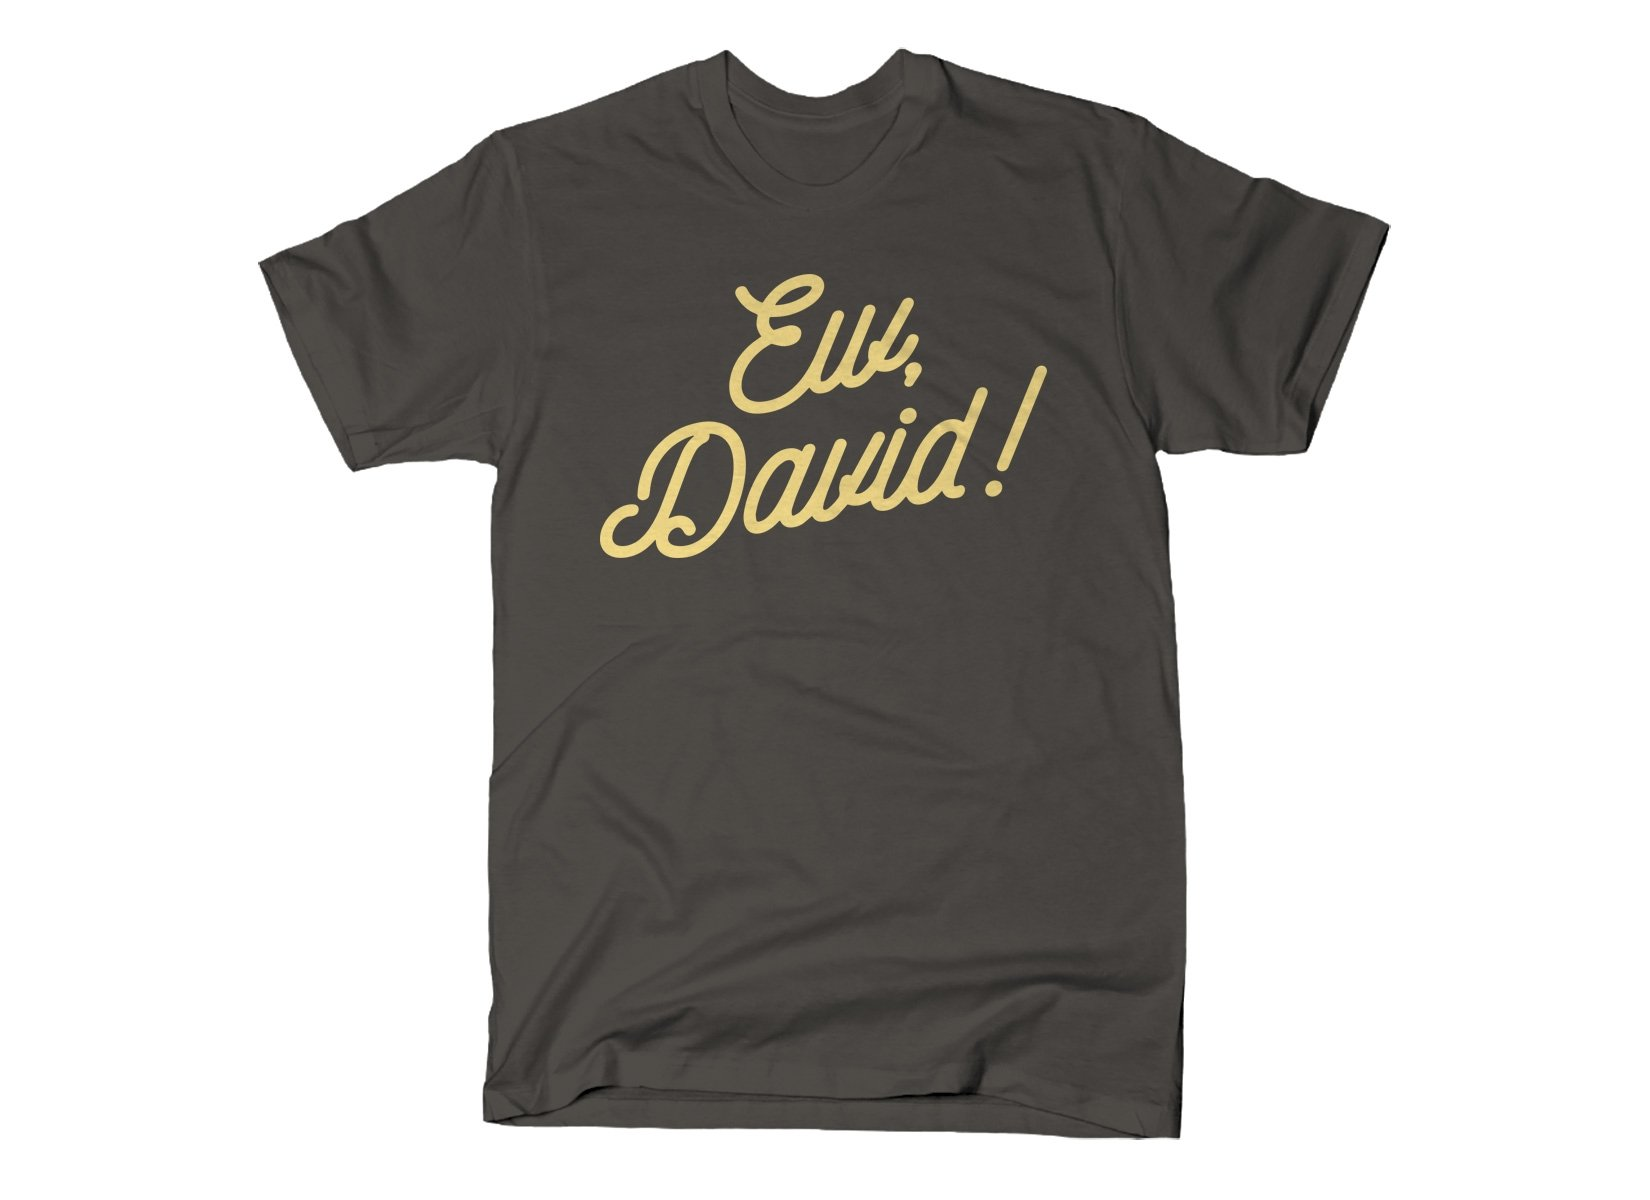 Ew, David! on Mens T-Shirt